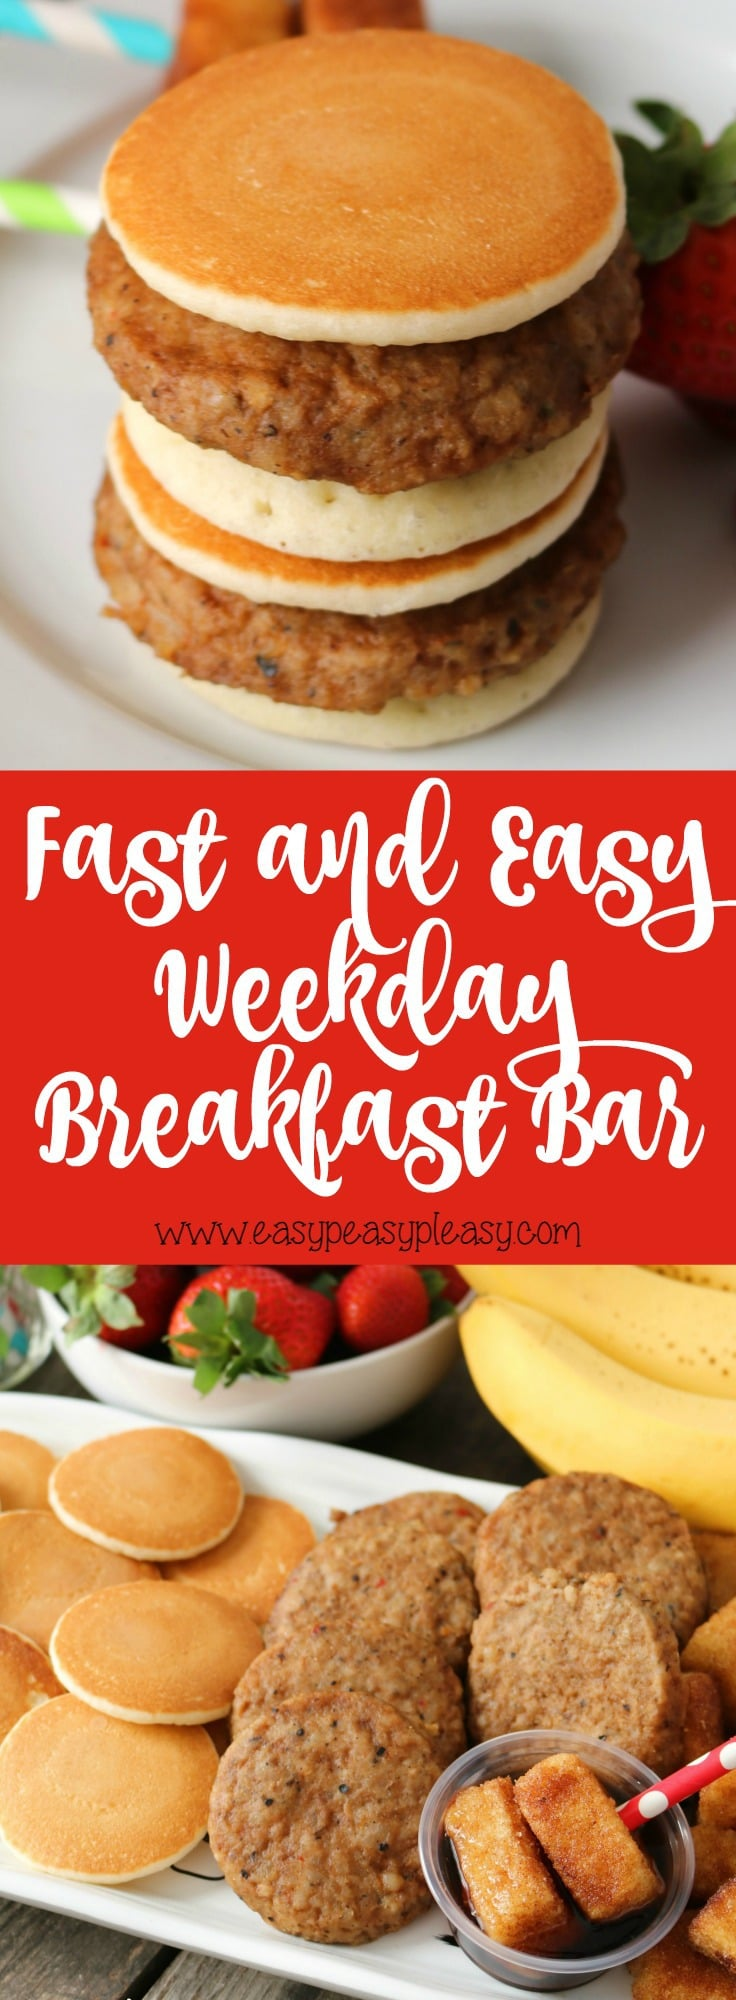 Fast and Easy Weekday Breakfast Idea your kids will love!